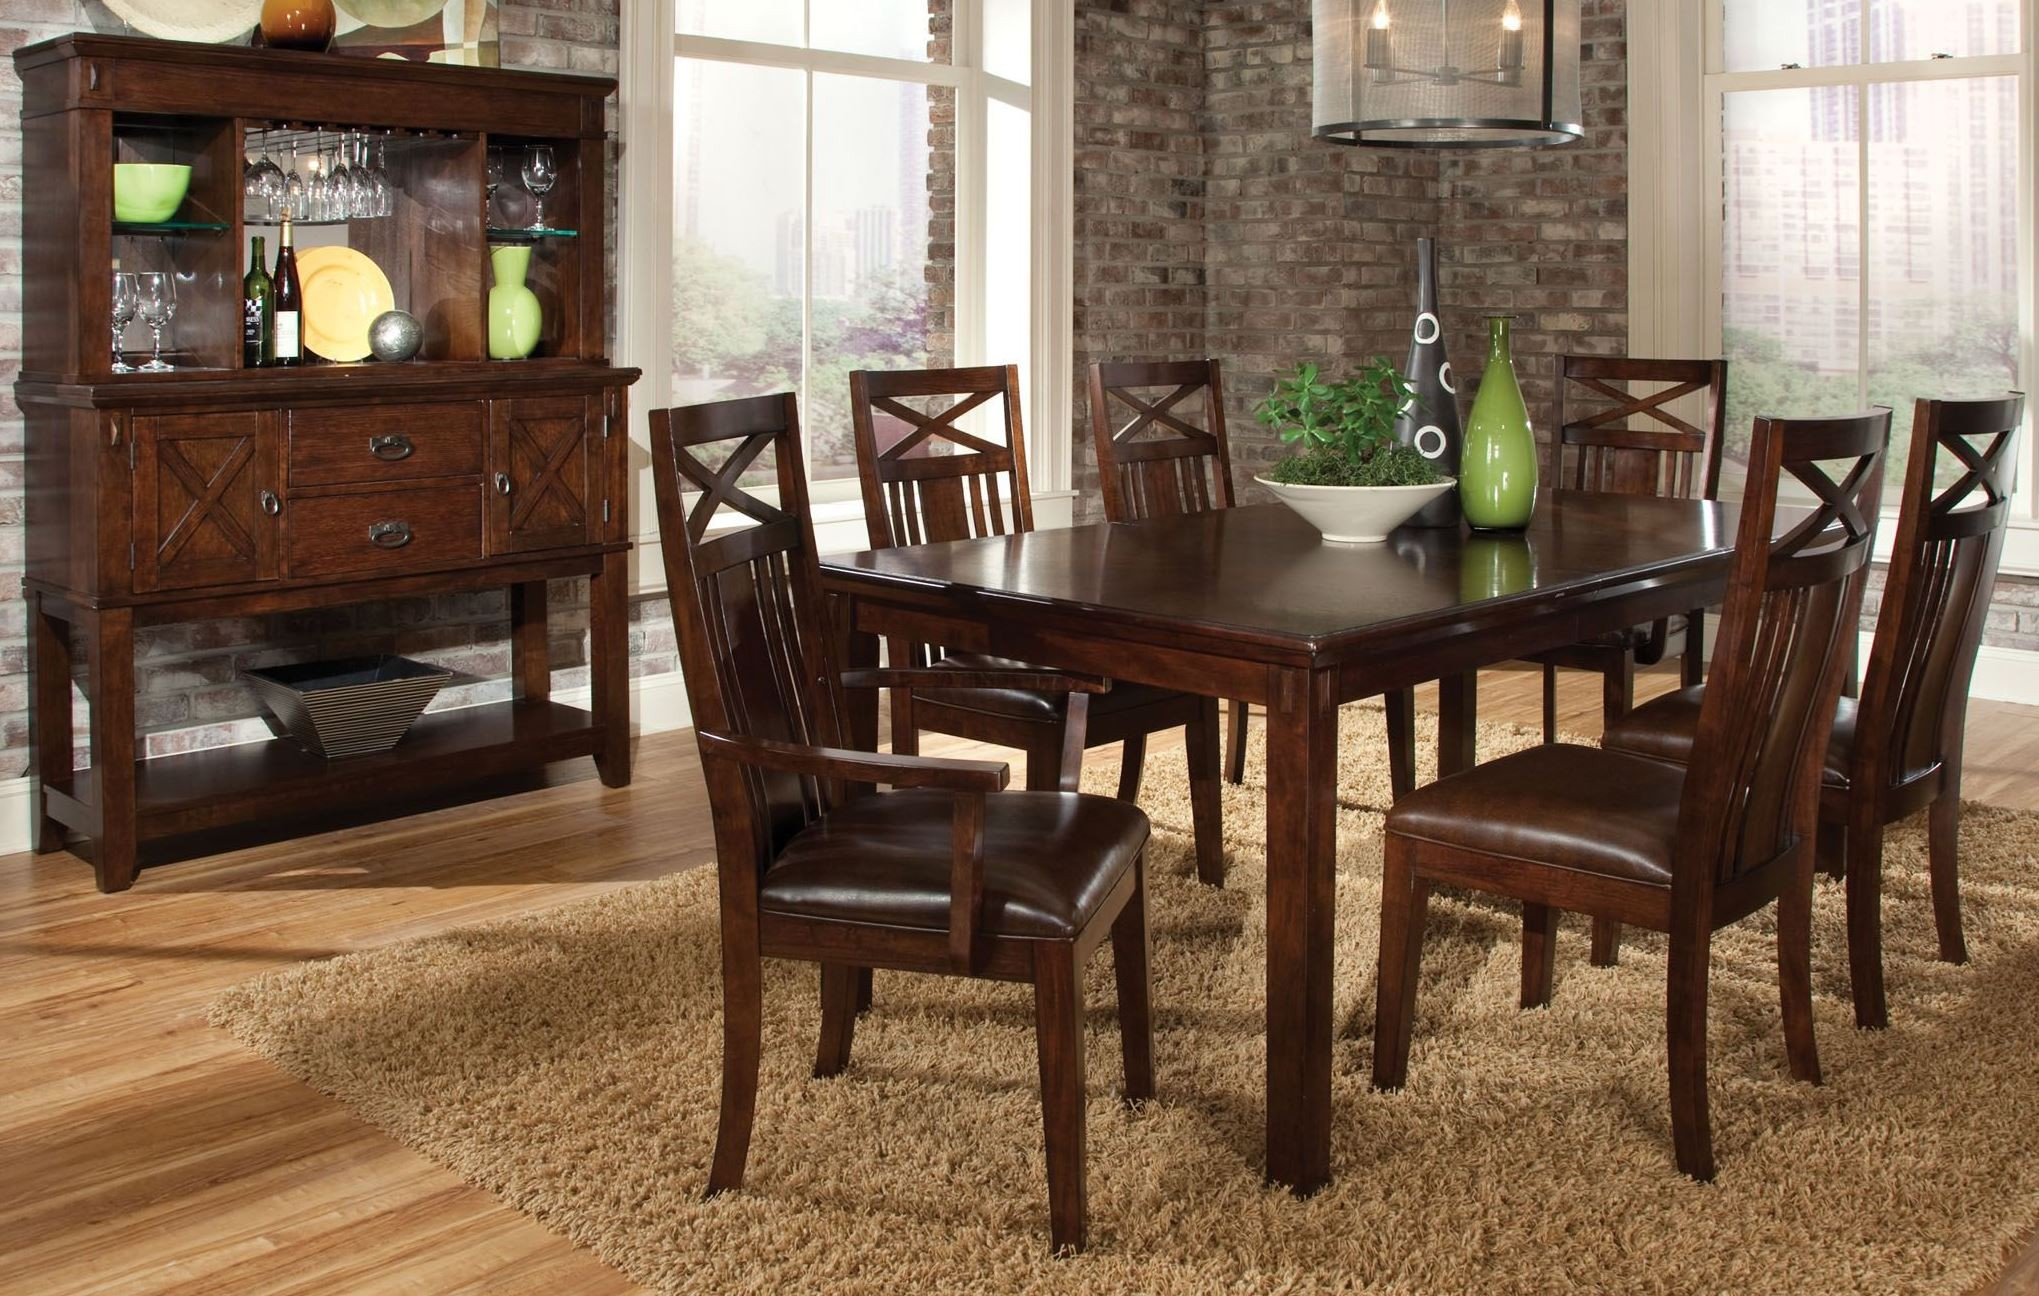 sonoma warm medium oak extendable dining room set from standard 11901 coleman furniture. Black Bedroom Furniture Sets. Home Design Ideas